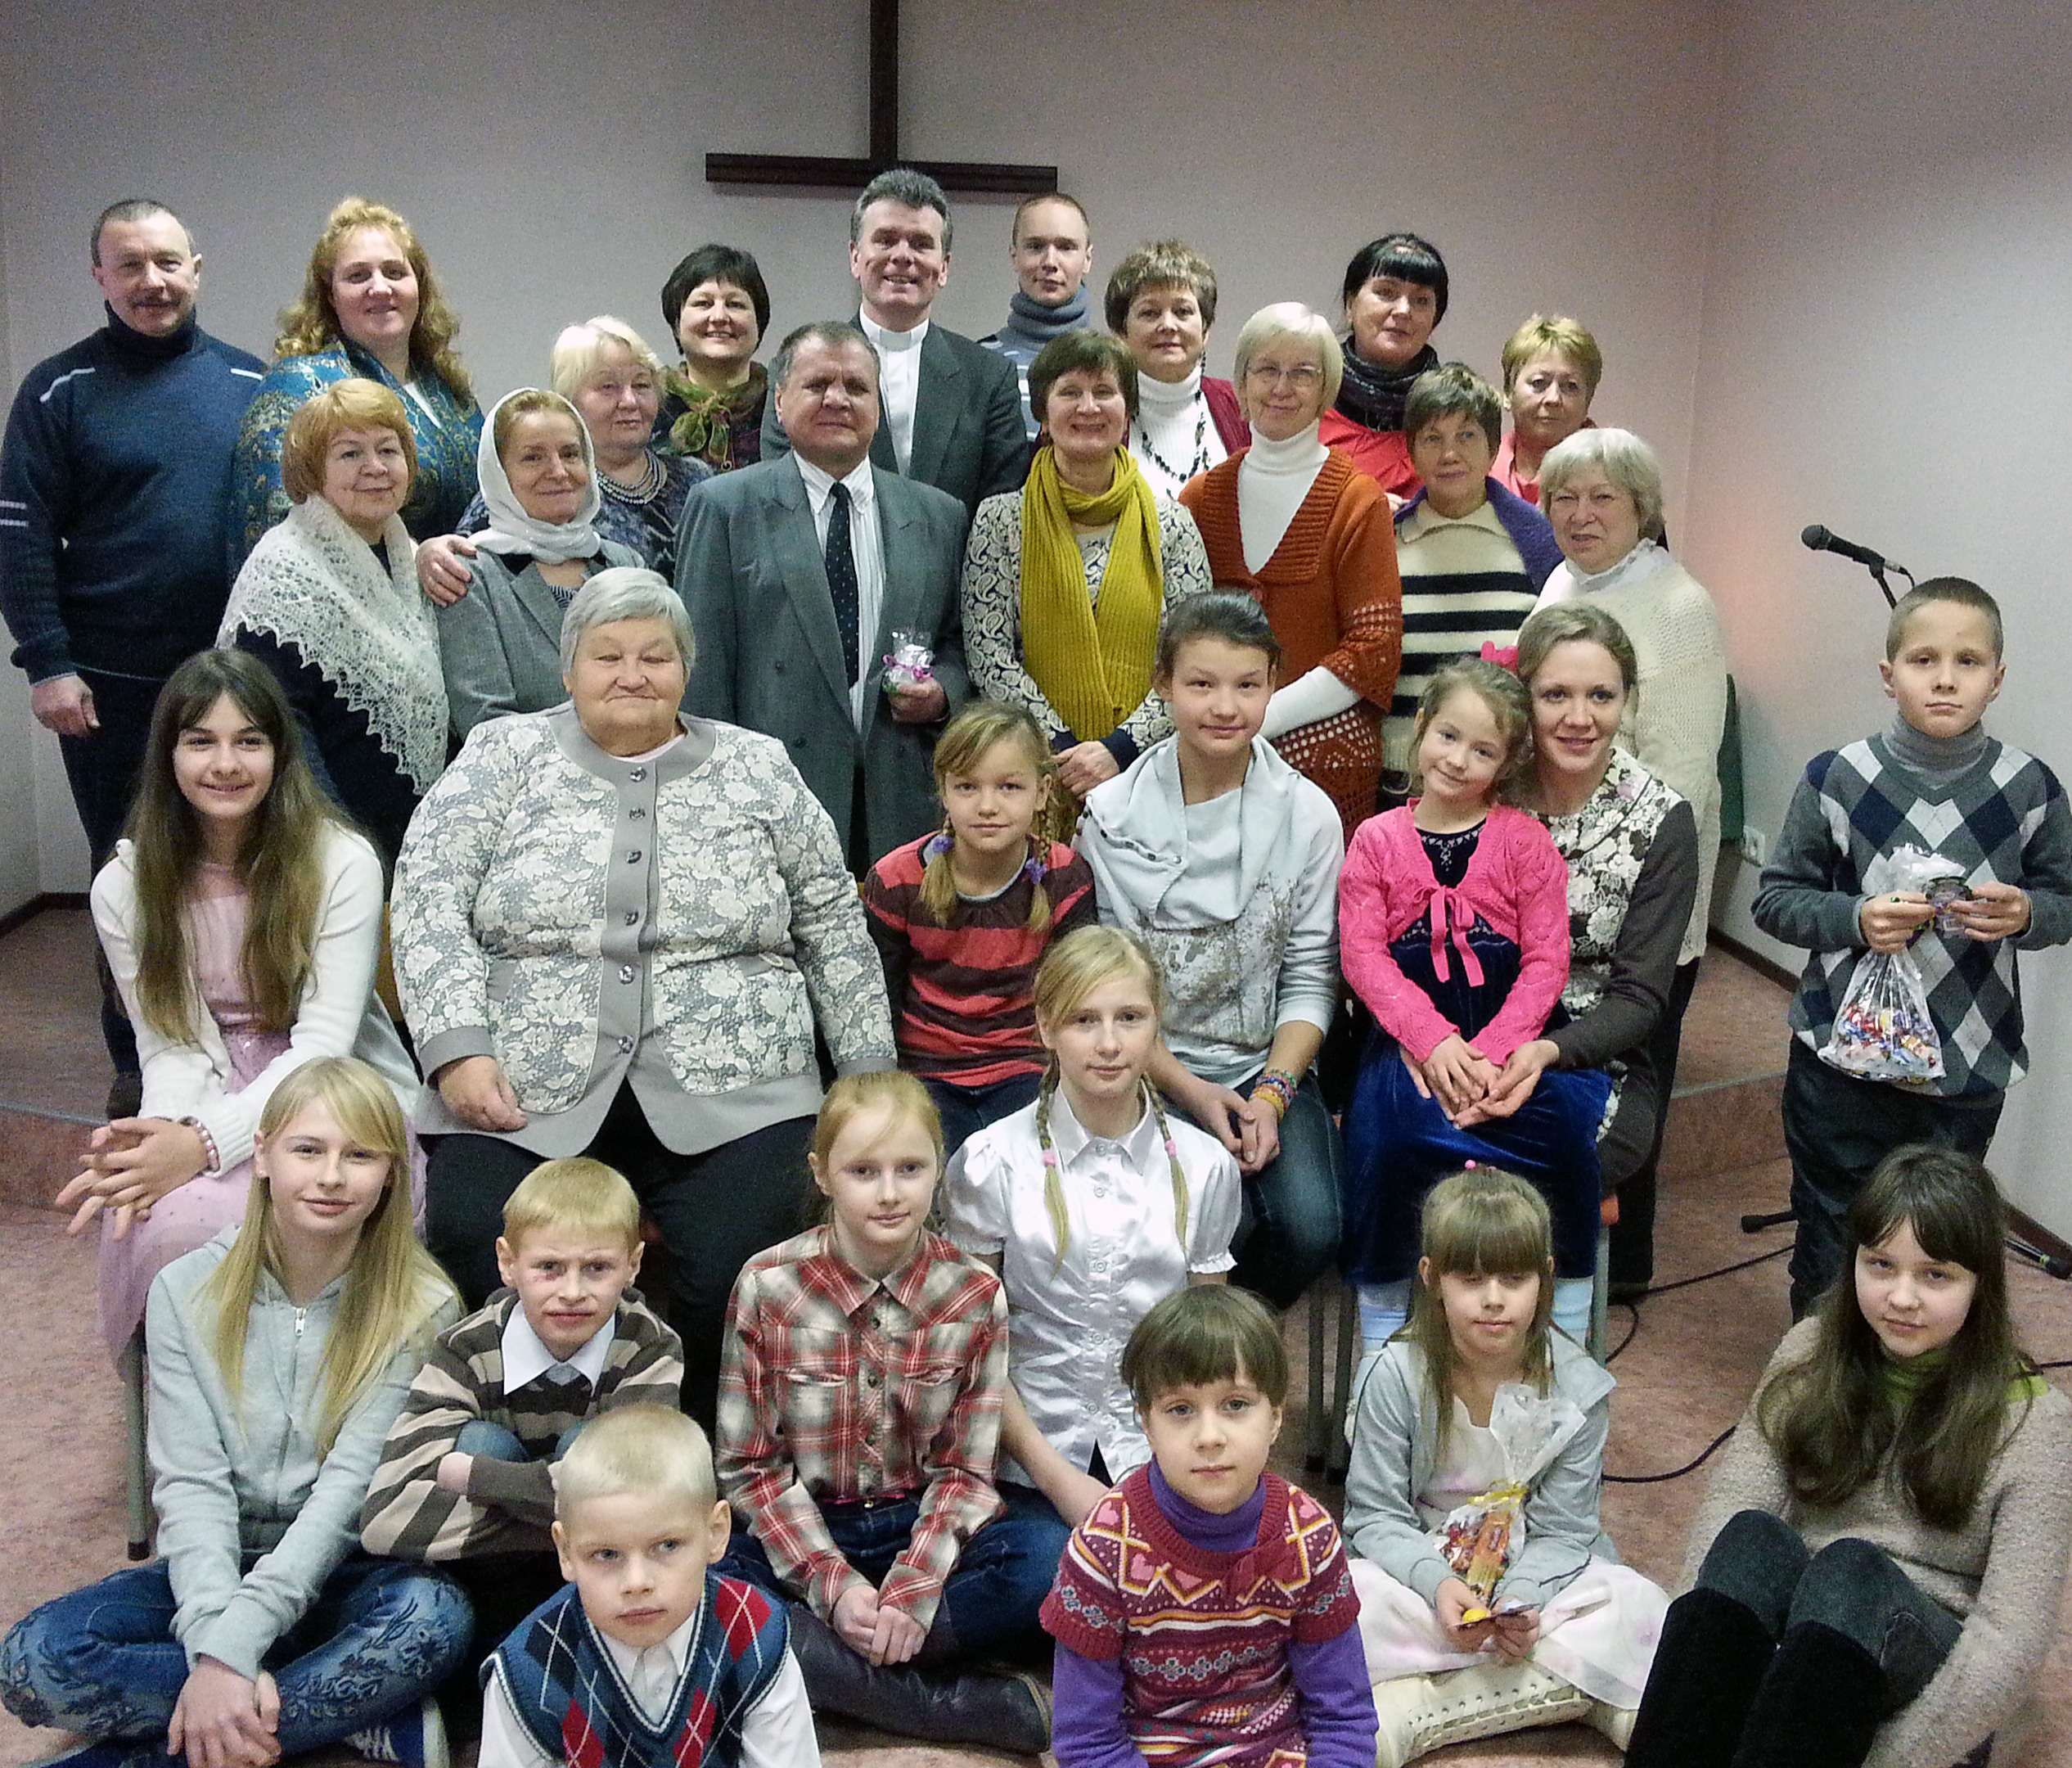 The congregation at Galvary United Methodist Church in Khotla-Jarve, Estonia